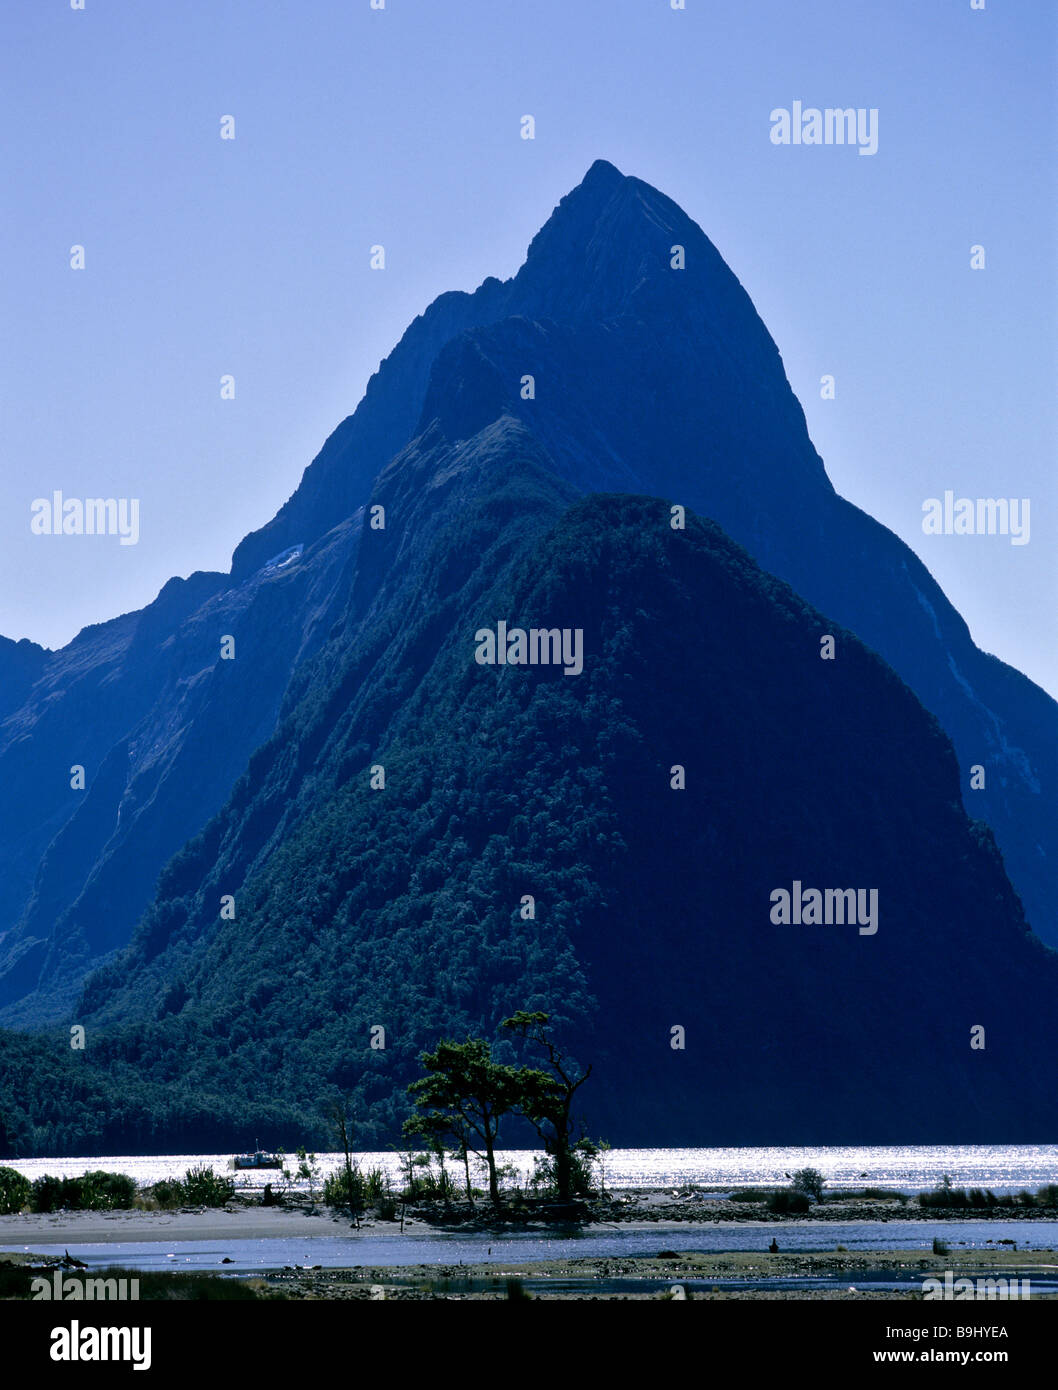 View of Mitre Peak, Milford Sound, Fiordland National Park, South Island, New Zealand - Stock Image